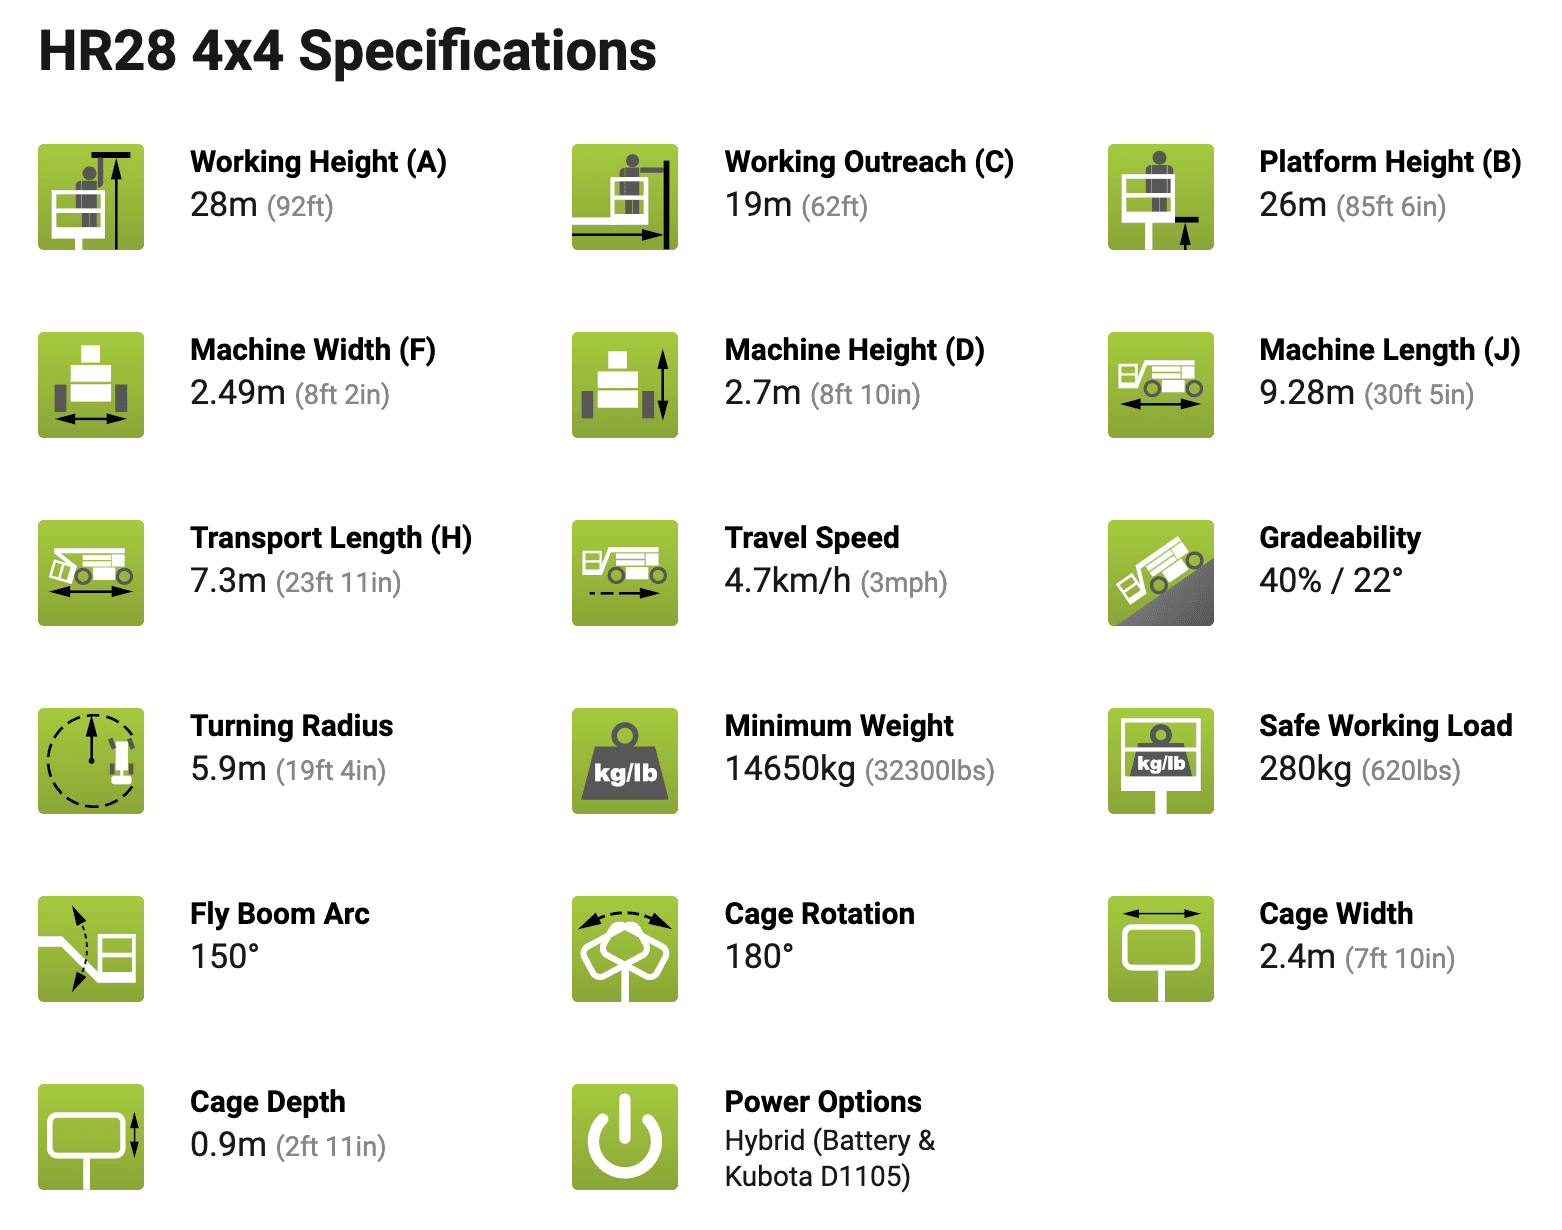 specifications HR28